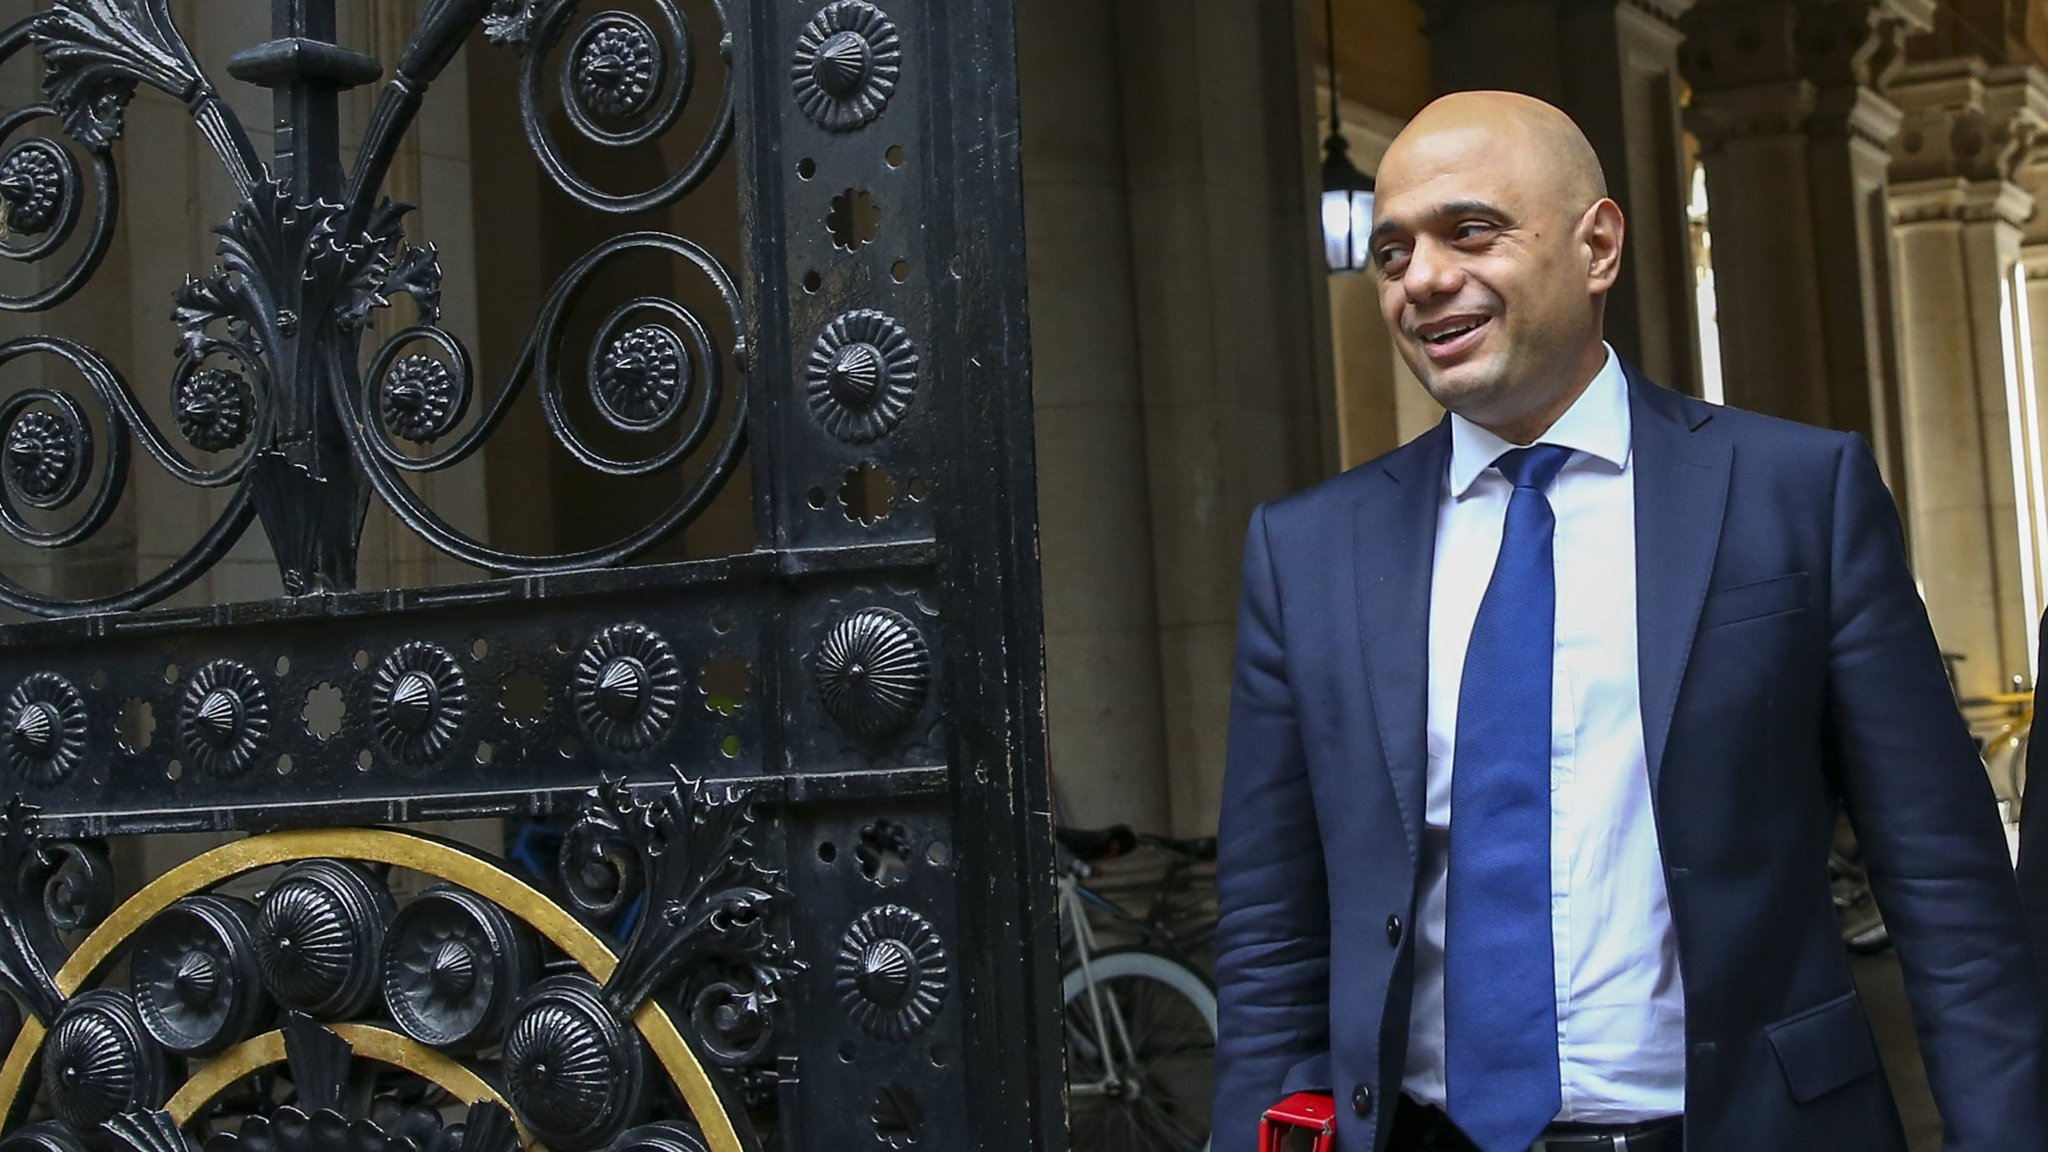 Sajid Javid's UK investment plans receive cool reception from IMF